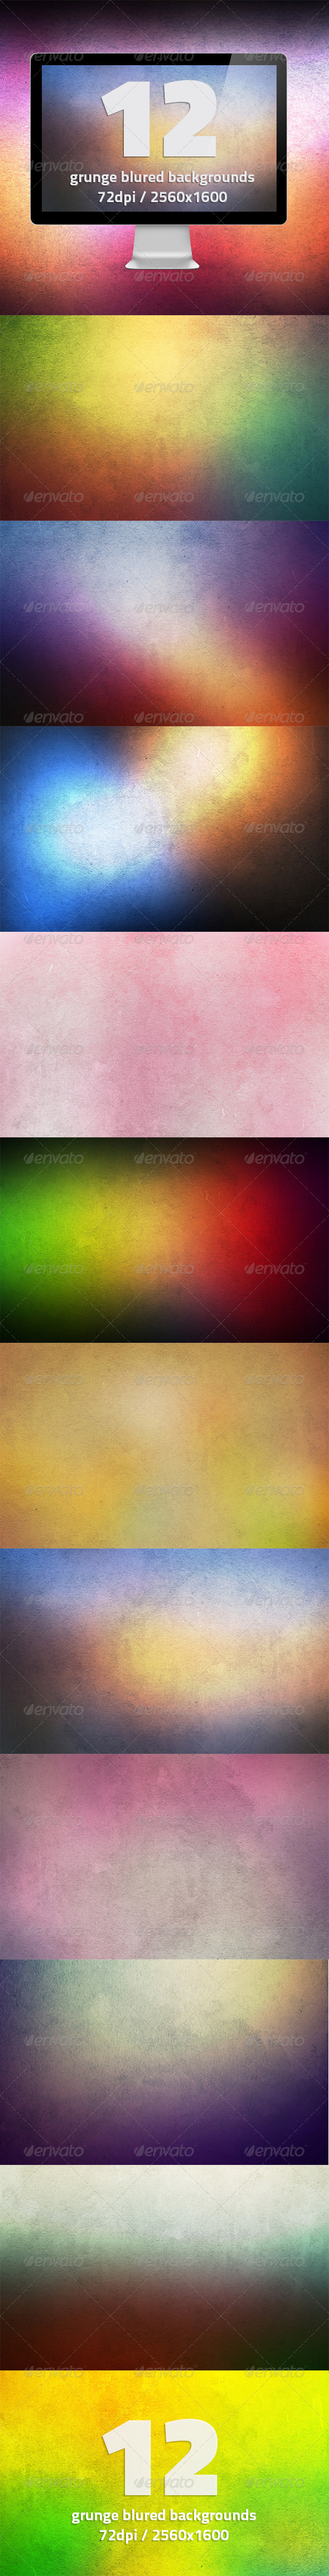 GraphicRiver 12 HQ Grunge Blurred Backgrounds Vol.2 7167374